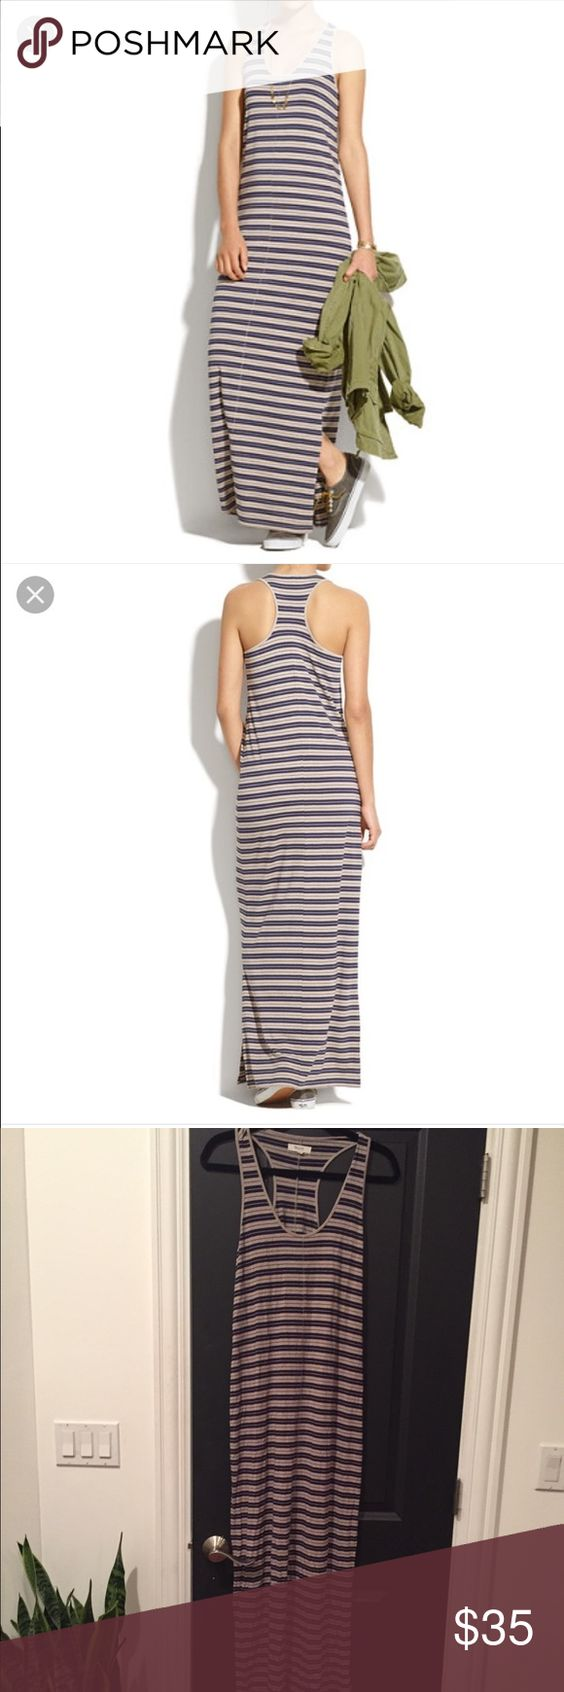 Madewell Striped Maxi Dress Size M Madewell Striped Maxi Dress Size M Racerback. Madewell Dresses Maxi